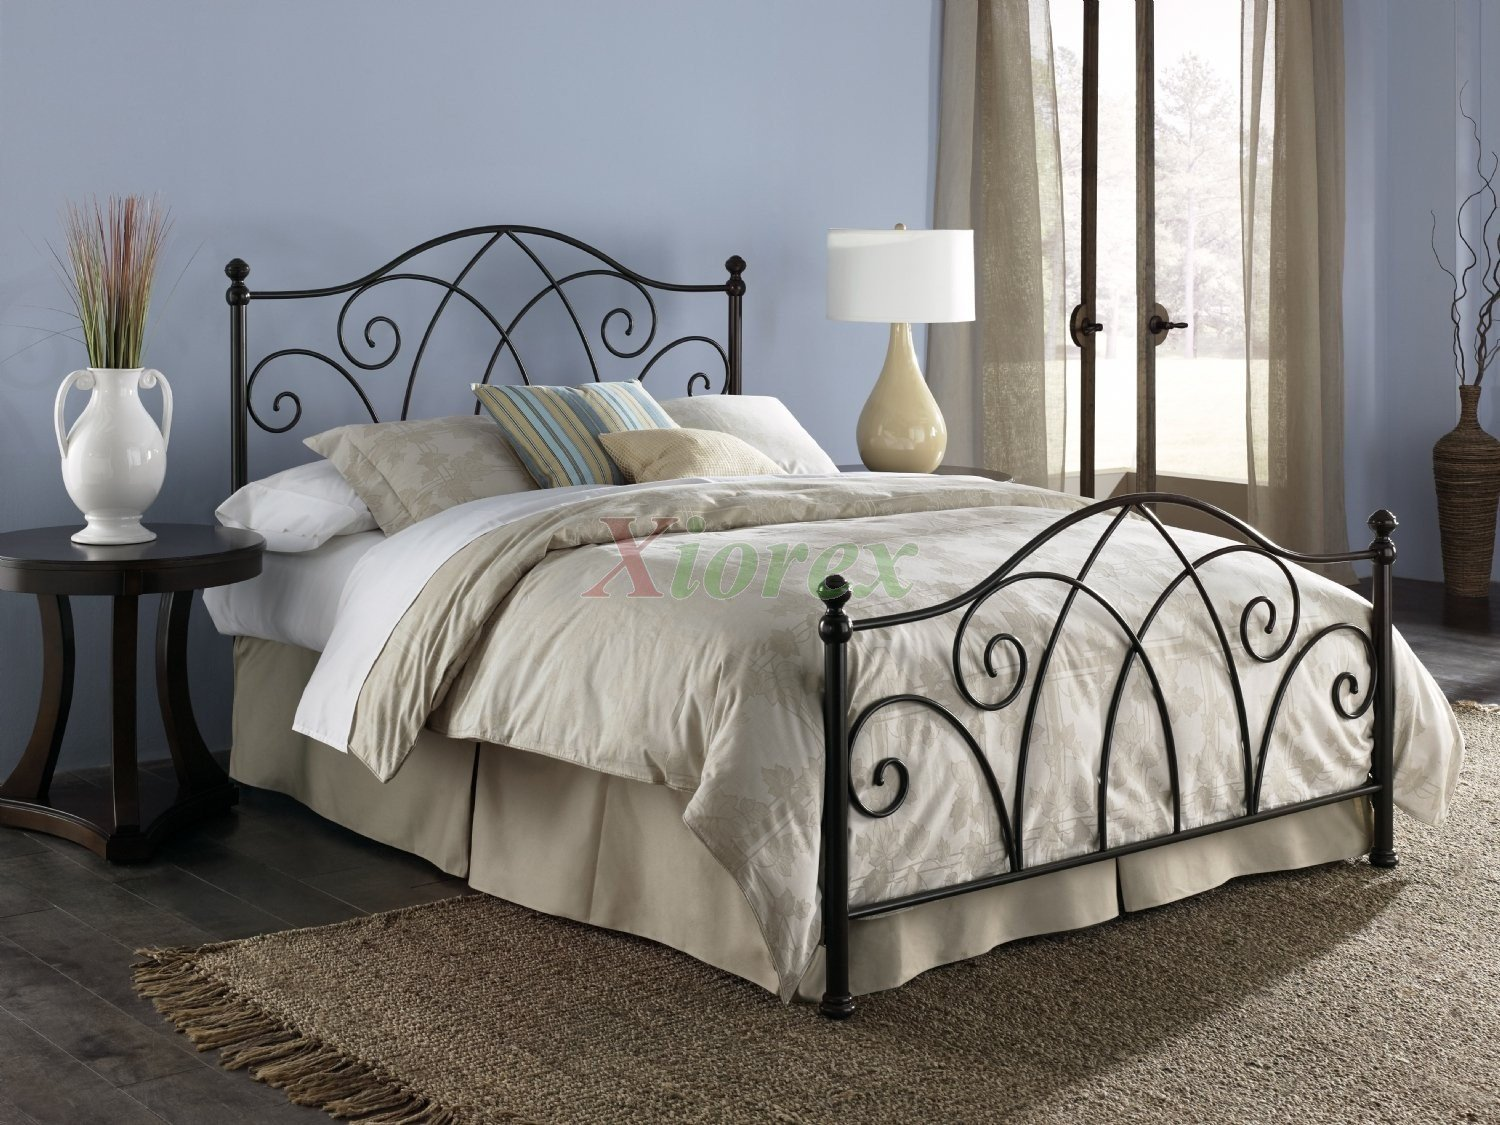 Queen Poster Bedroom Set Beautiful Deland Bed In Brown Sparkle Finish by Fashion Bed Group